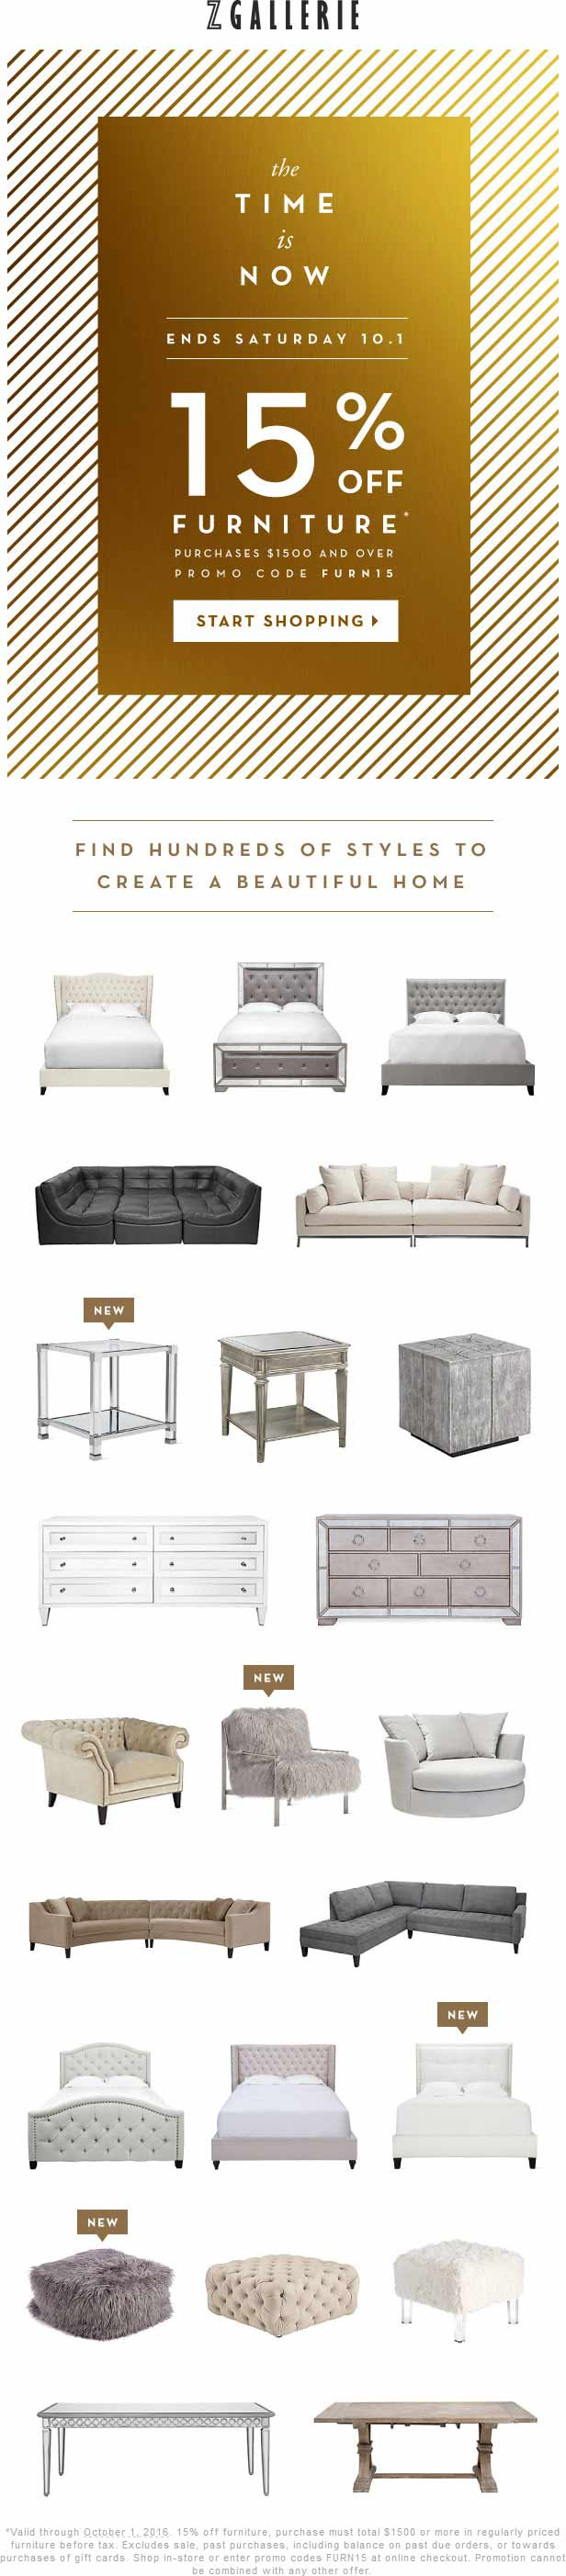 Z Gallerie Coupon May 2017 15% off $1500 on furniture at Z Gallerie, or online via promo code FURN15